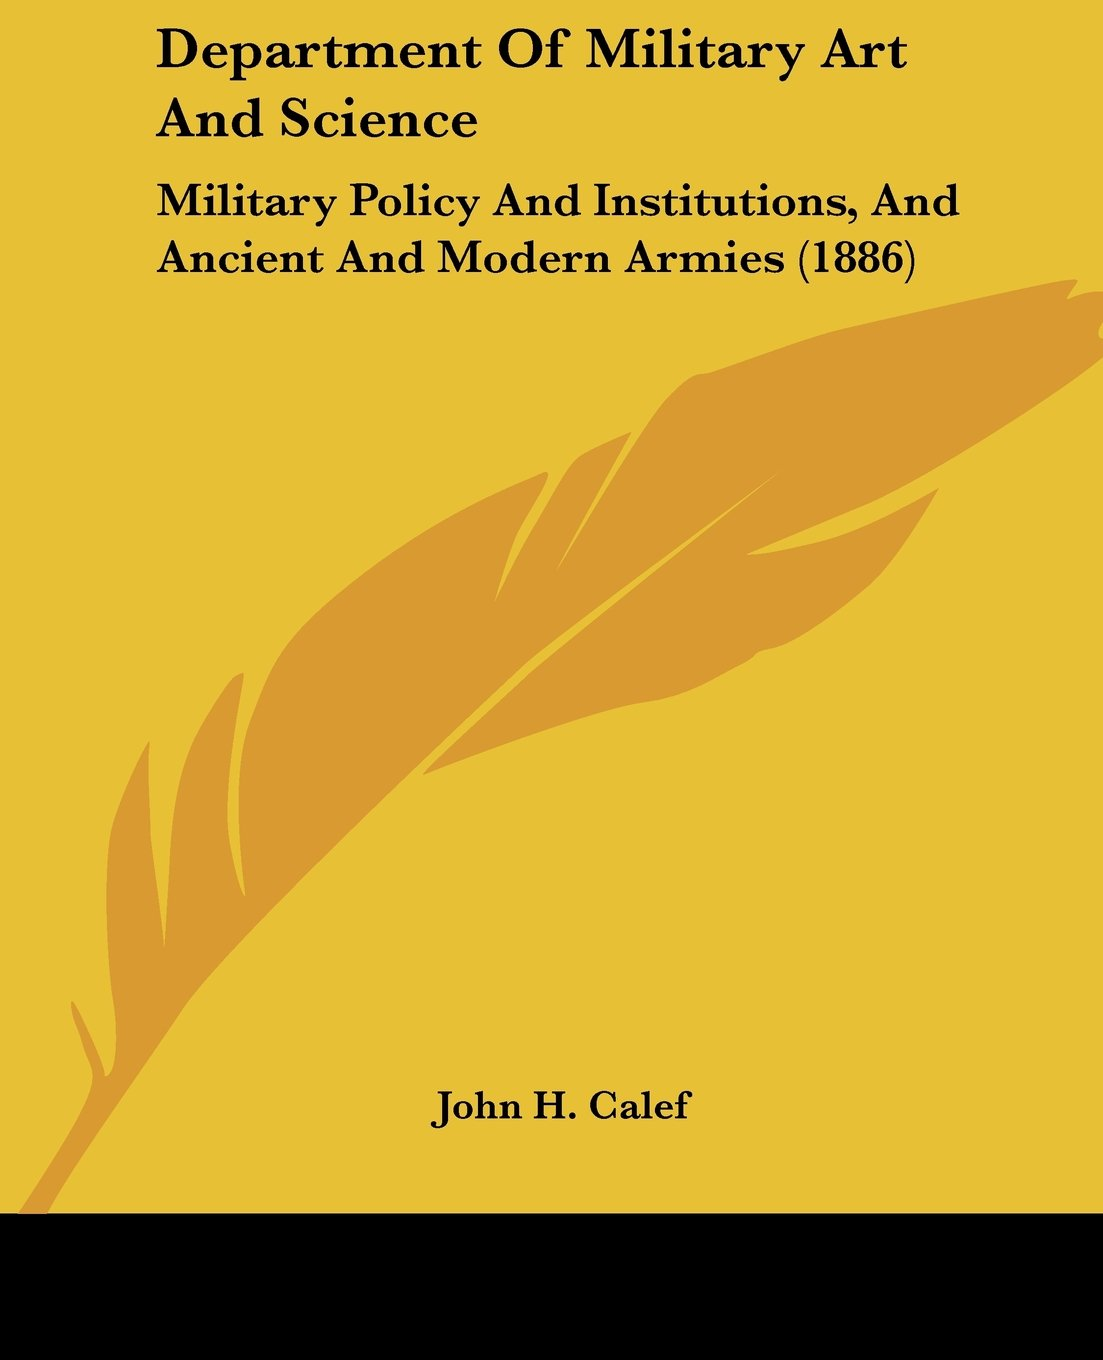 Department Of Military Art And Science: Military Policy And Institutions, And Ancient And Modern Armies (1886) pdf epub